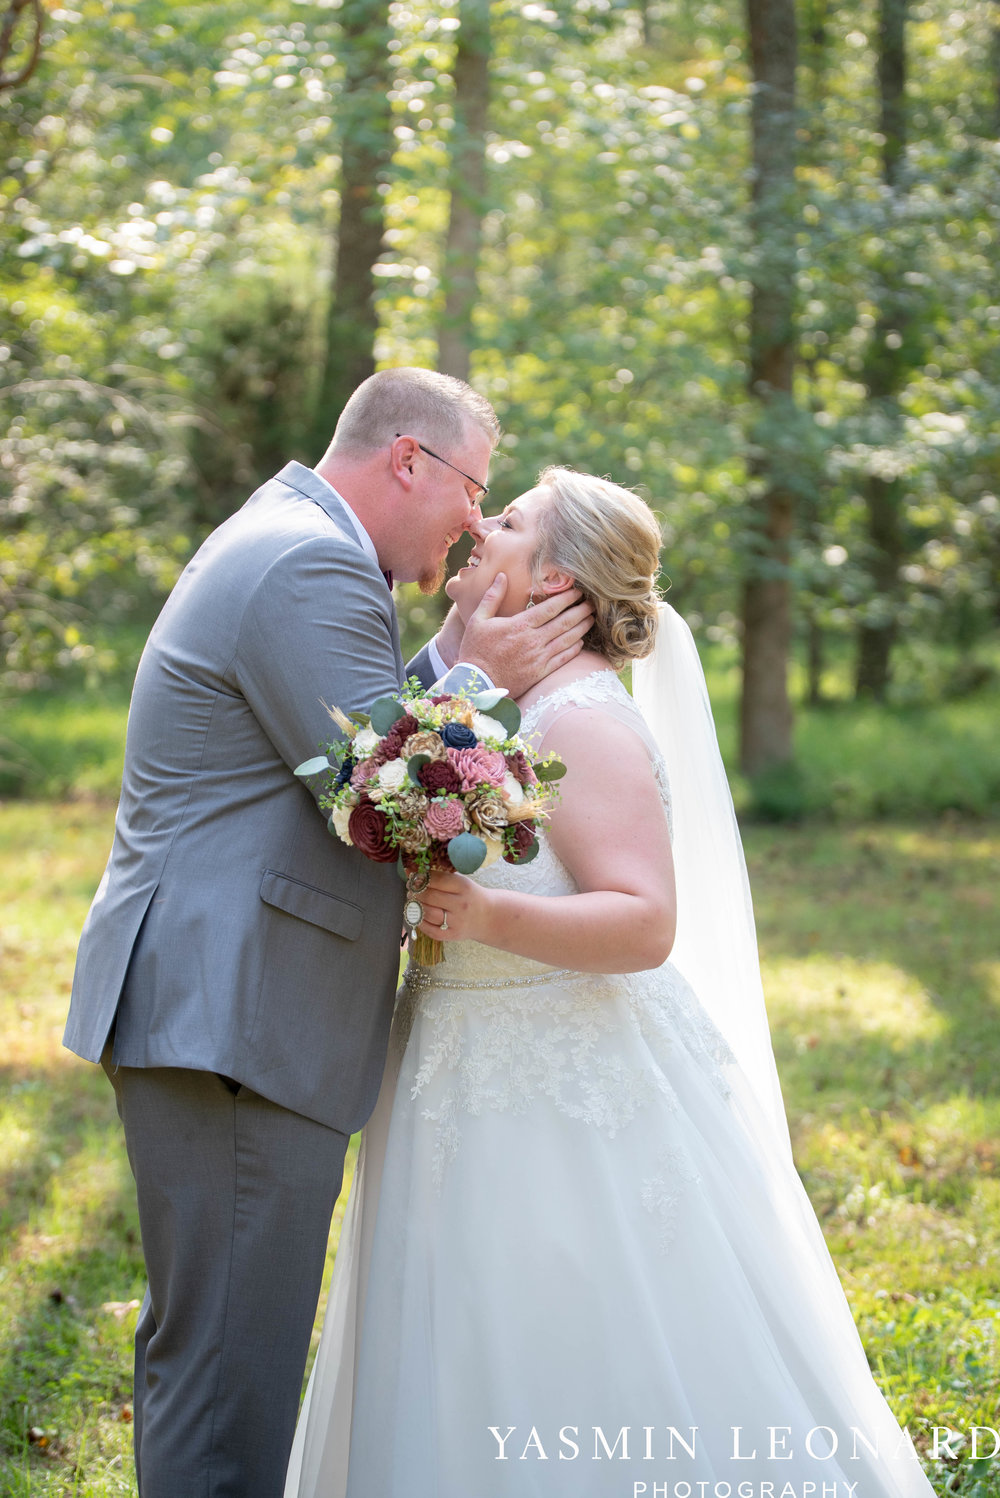 Danner Farms - NC Wedding Venues - NC Barns - Statesville NC - NC Wedding Photographer - High Point Wedding Photographer - Yasmin Leonard Photography-15.jpg